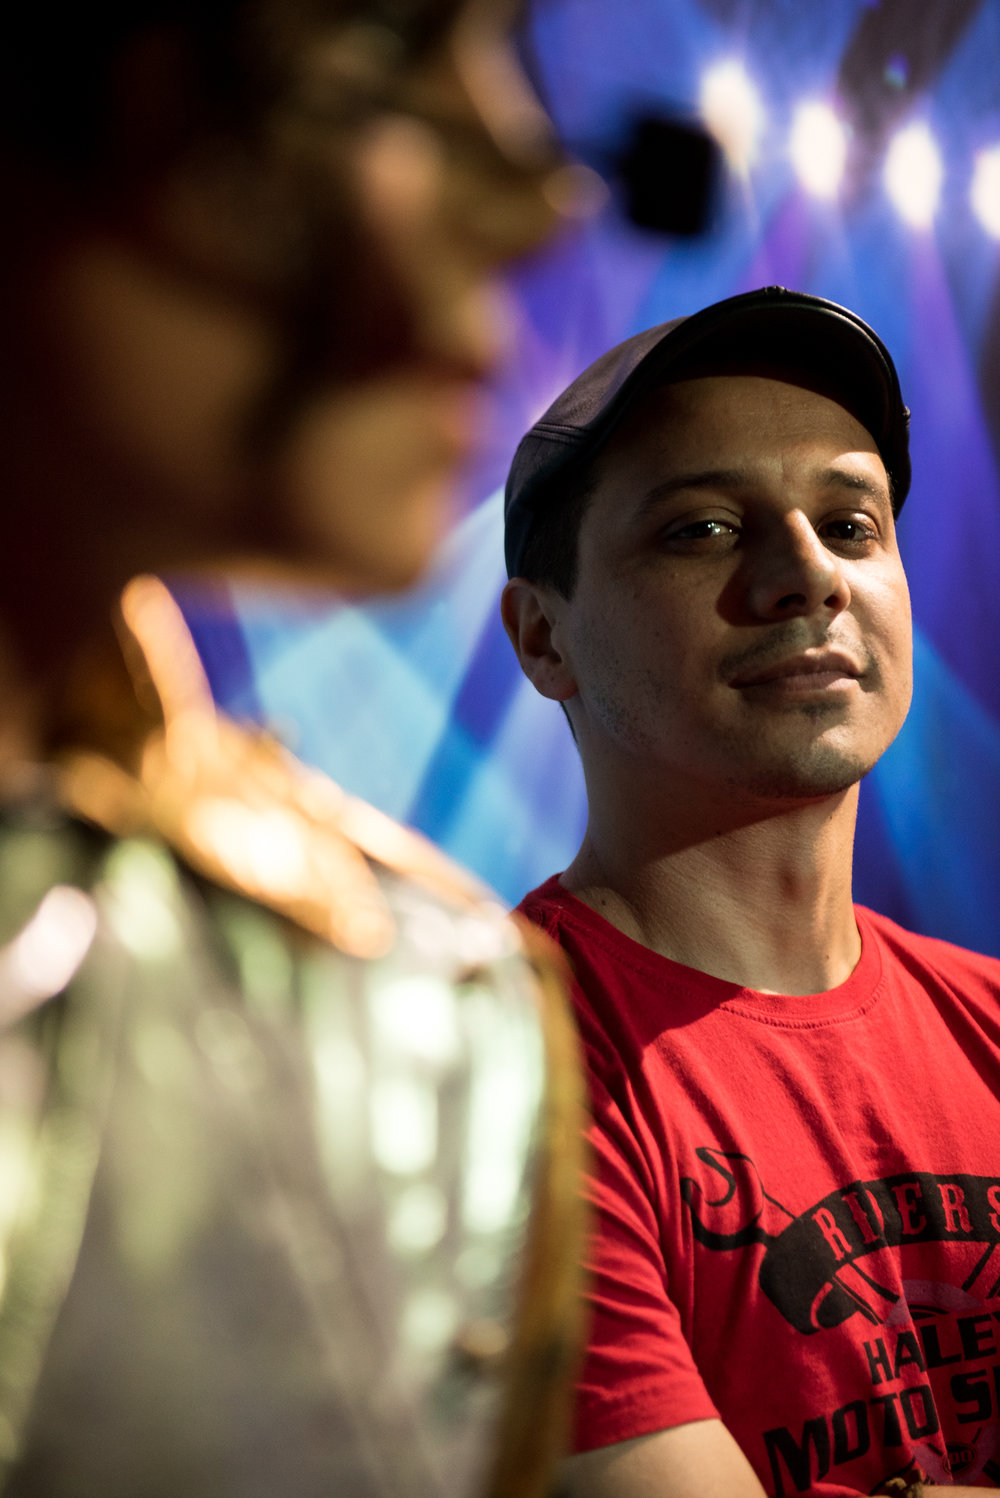 Boston, MA - 7/10/17 - Brazilian artist, Abilio Silva, poses for a portrait at the Dreamland Wax Museum in downtown Boston on Monday, July 10, 2017. The Dreamland Wax Museum is slated to open up at the end of the month and finishing touches are being put on the over 100 wax figures while staging is set around the building. (Nicholas Pfosi for The Boston Globe) Reporter: Bethany Ao Topic: 23waxmuseum(3)